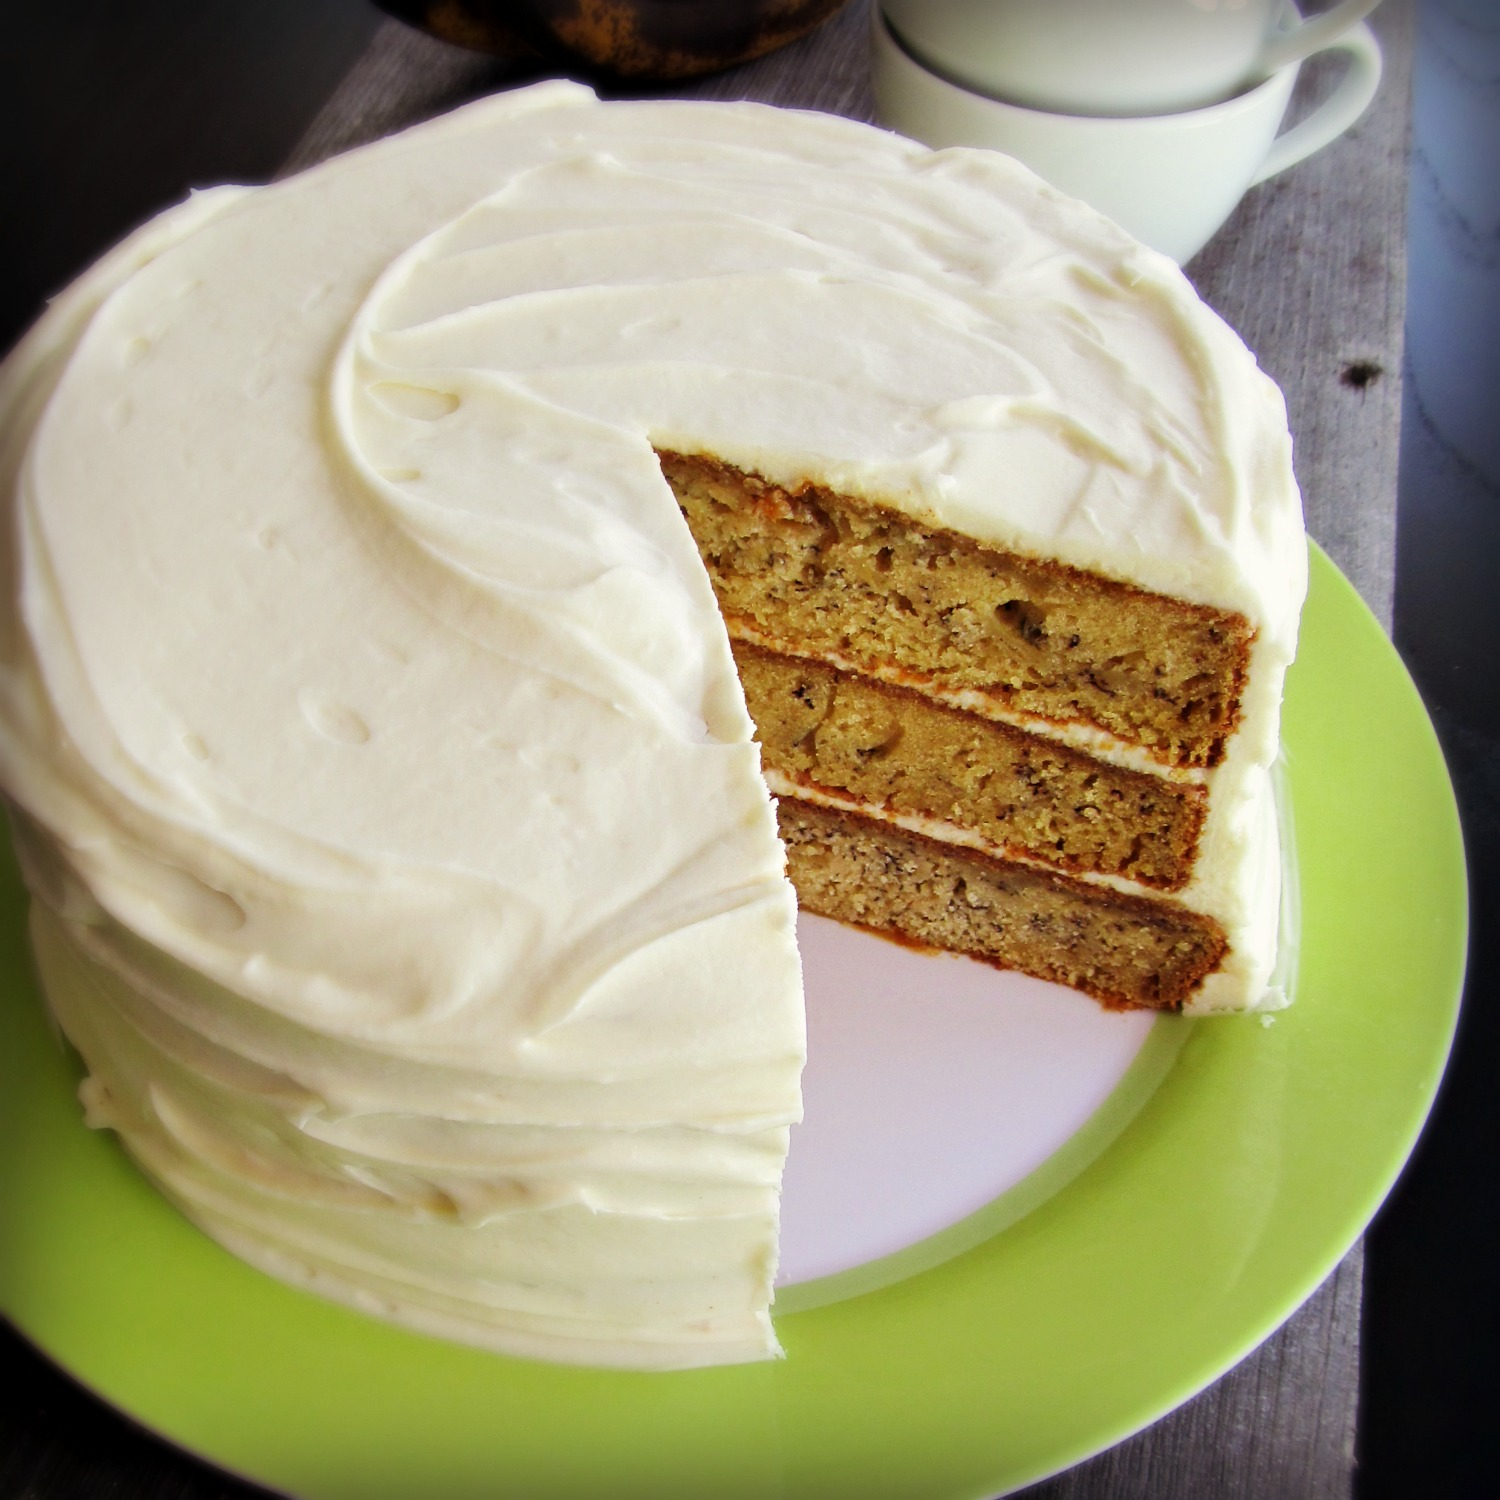 15779 besides Caramel Cake likewise 1638 in addition 27077 together with 92464598573229885. on old southern caramel cake